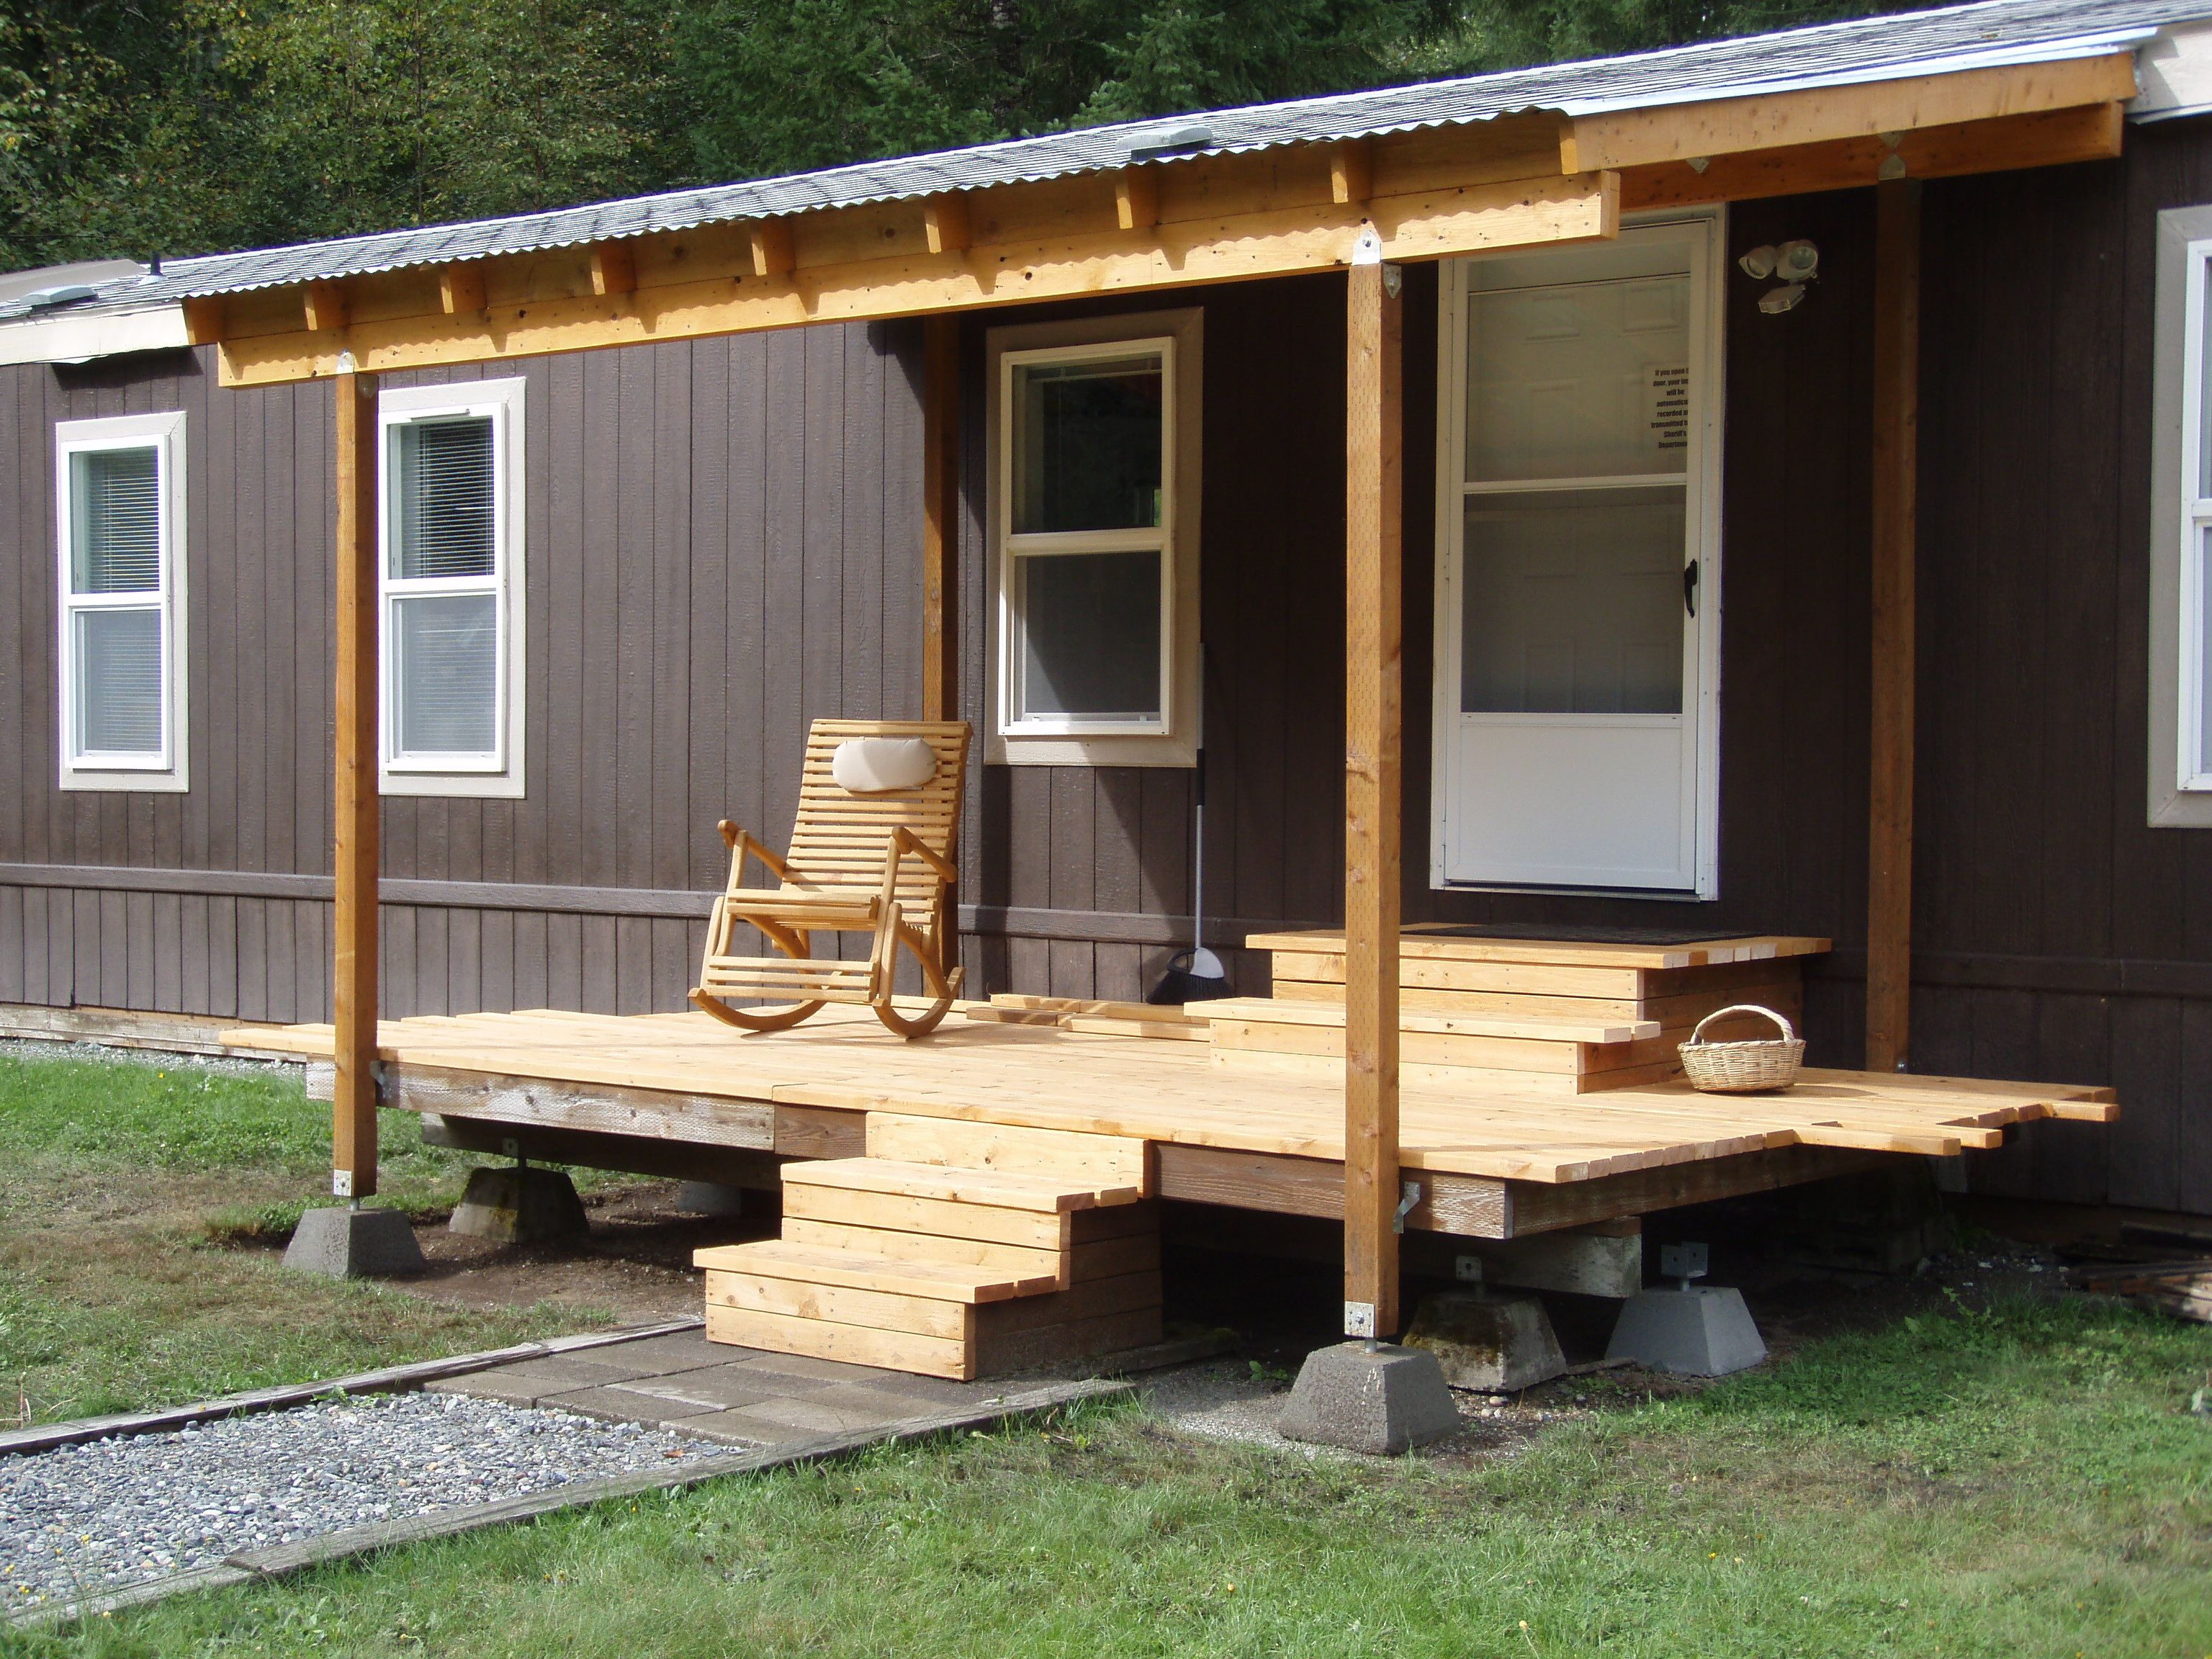 Mobile Home Deck Designs Brase Deck And Porch Plans Designs Best .